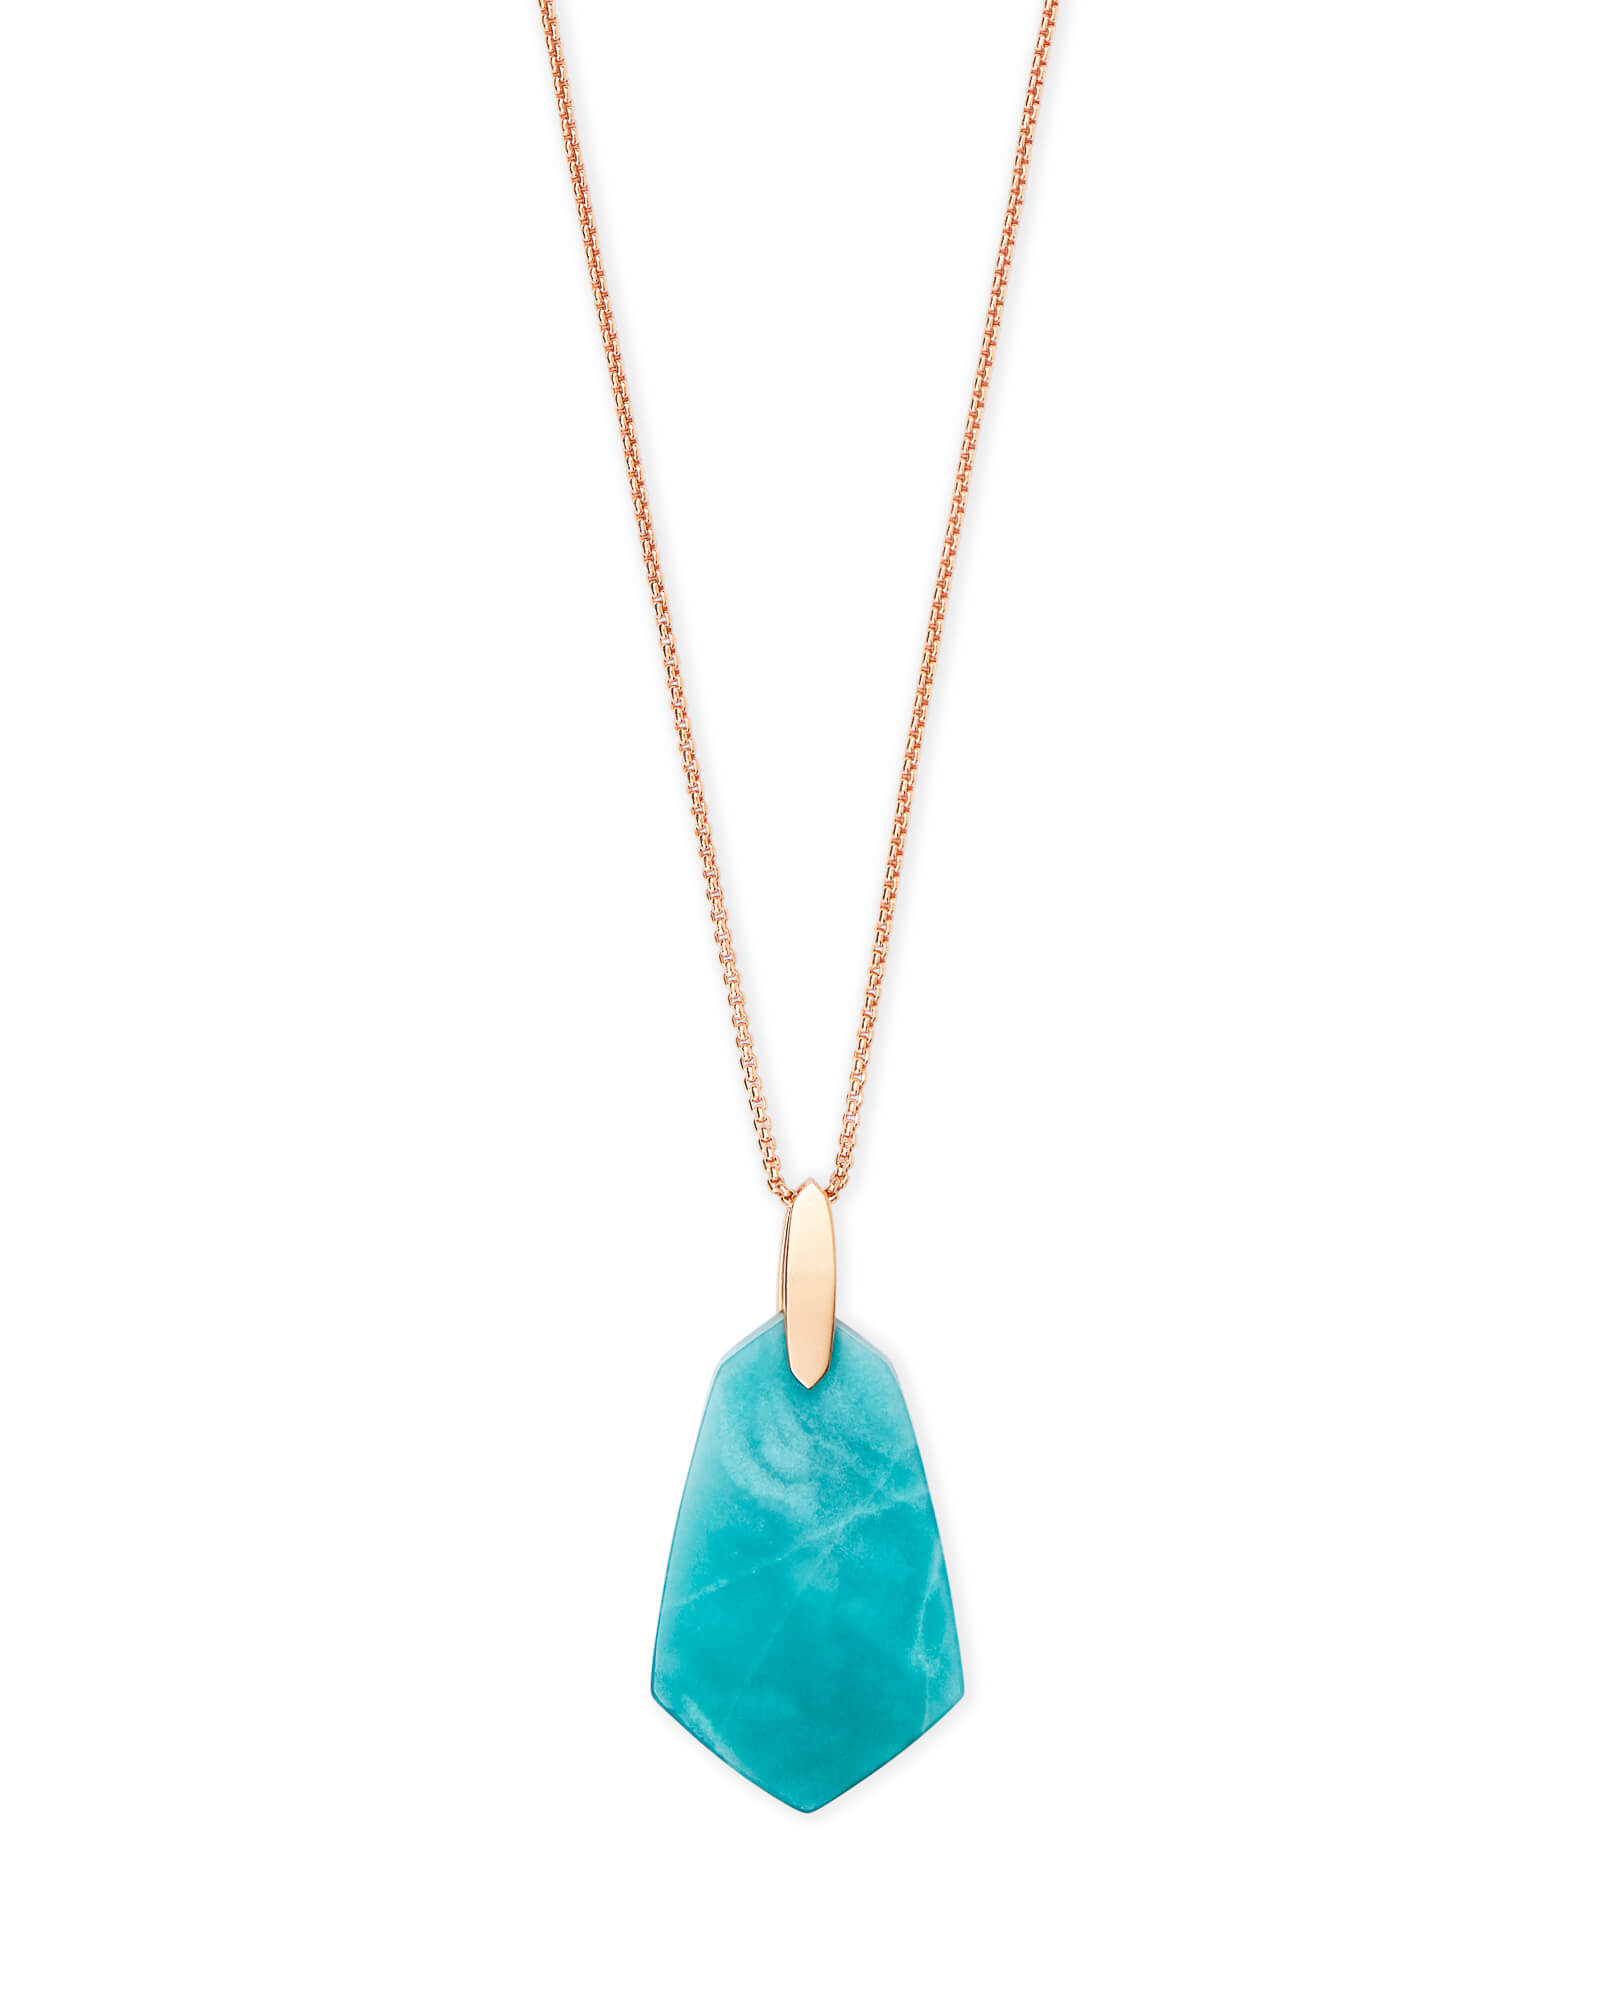 Cam Rose Gold Long Pendant Necklace in Teal Quartzite